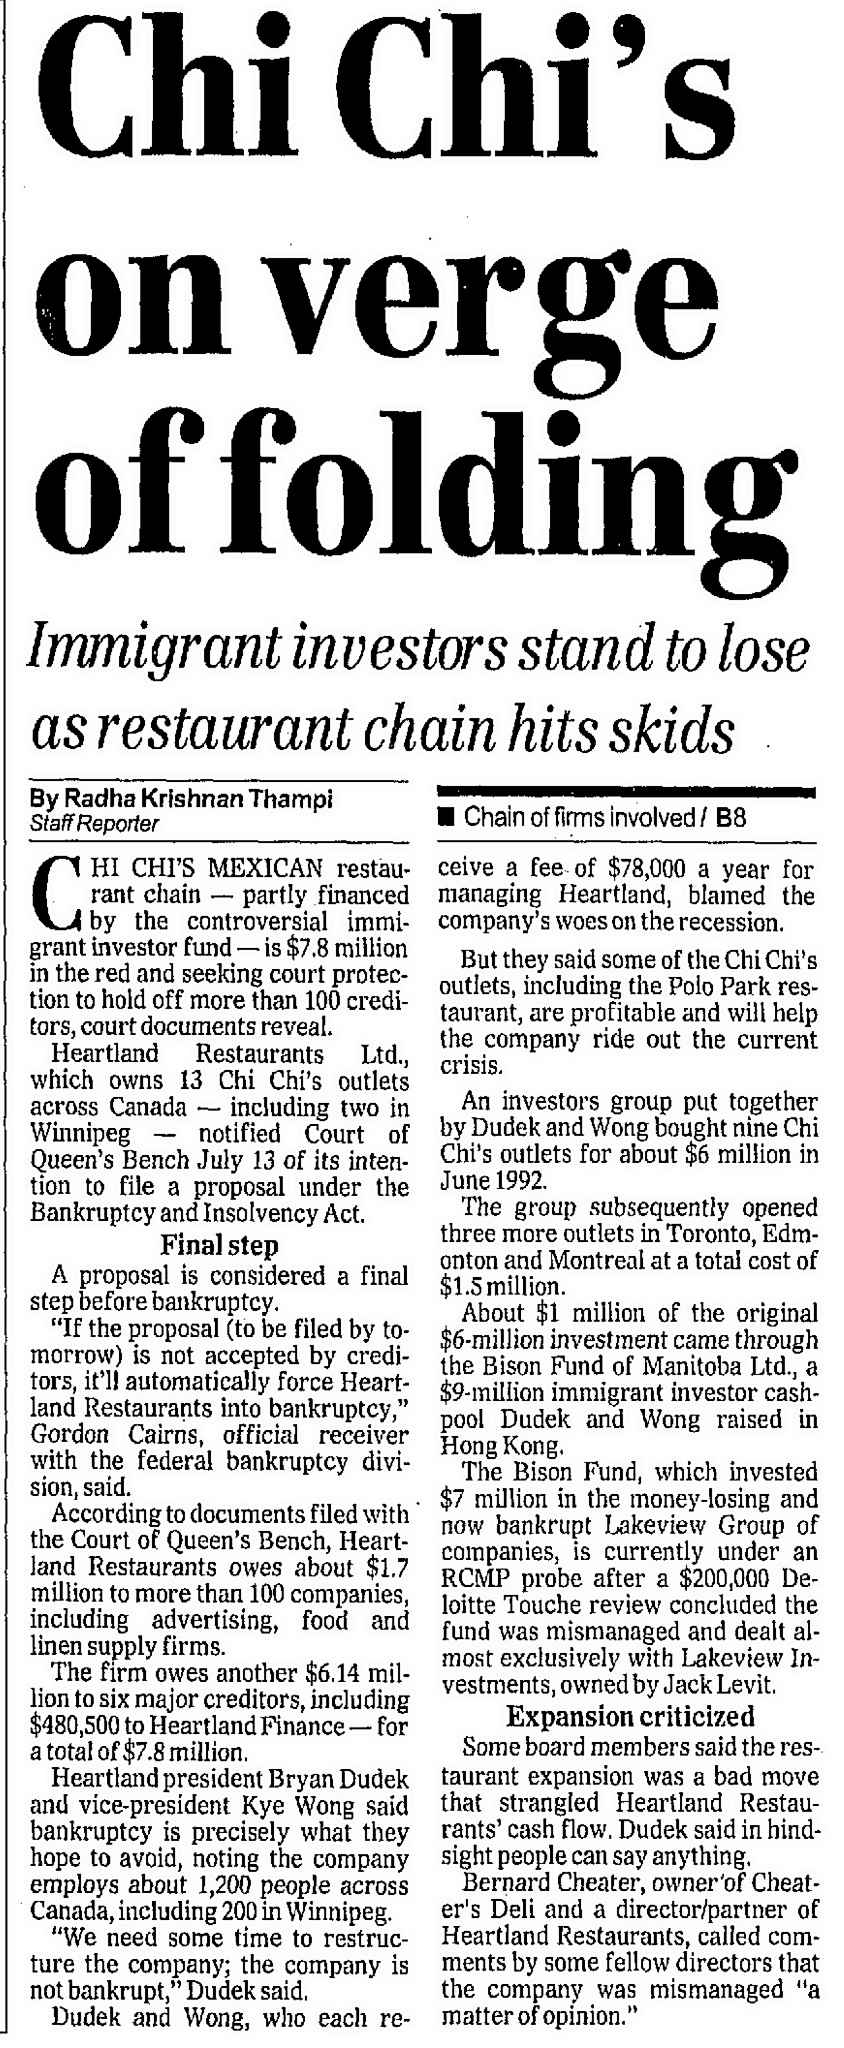 The restaurant's financial woes are outlined in the Free Press in August 1993.